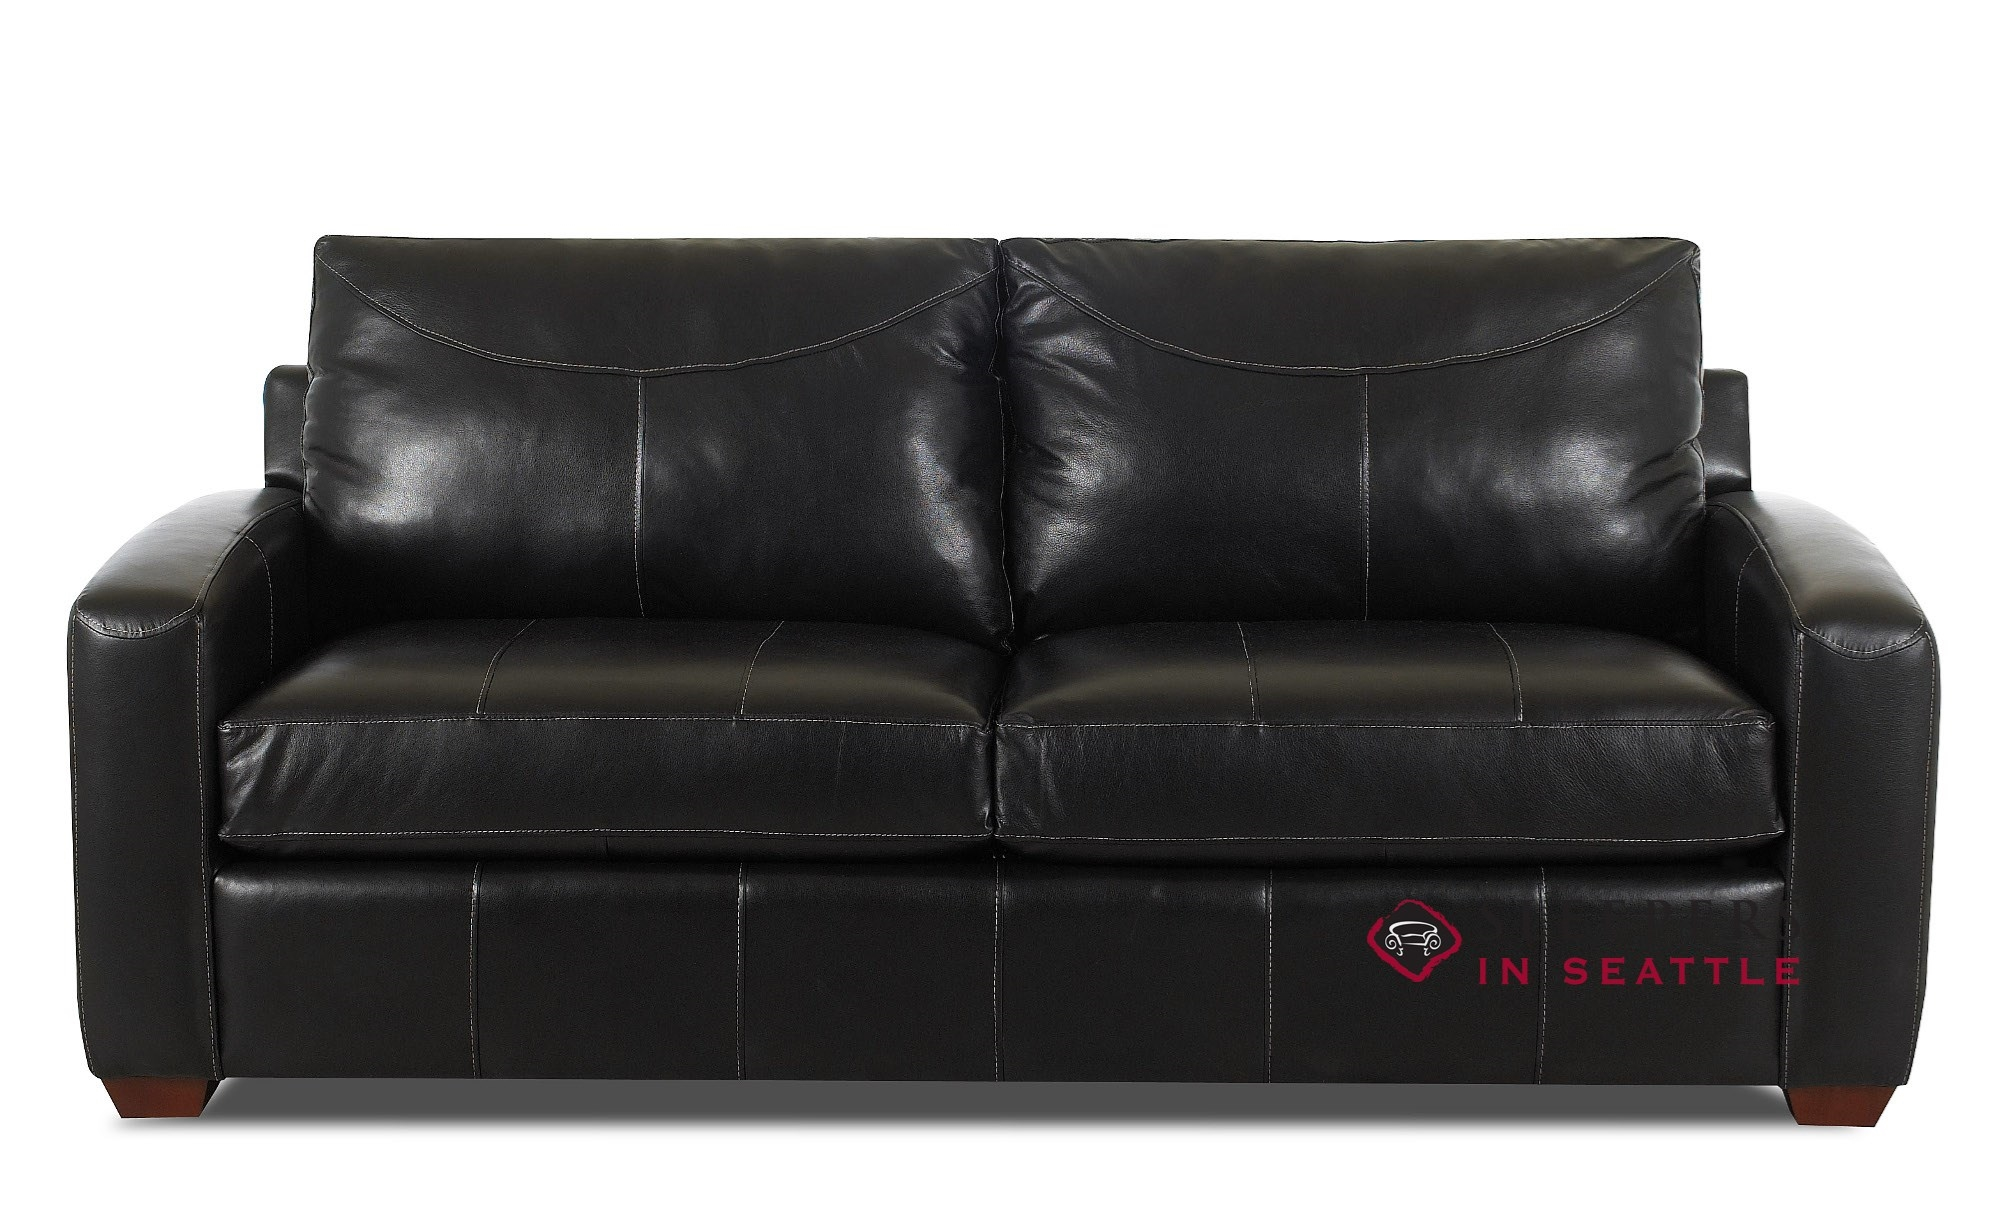 Sleeper Sofa Quick Delivery Quick Ship Boulder Full Leather Sofa By Savvy Fast Shipping Boulder Full Sofa Bed Sleepersinseattle